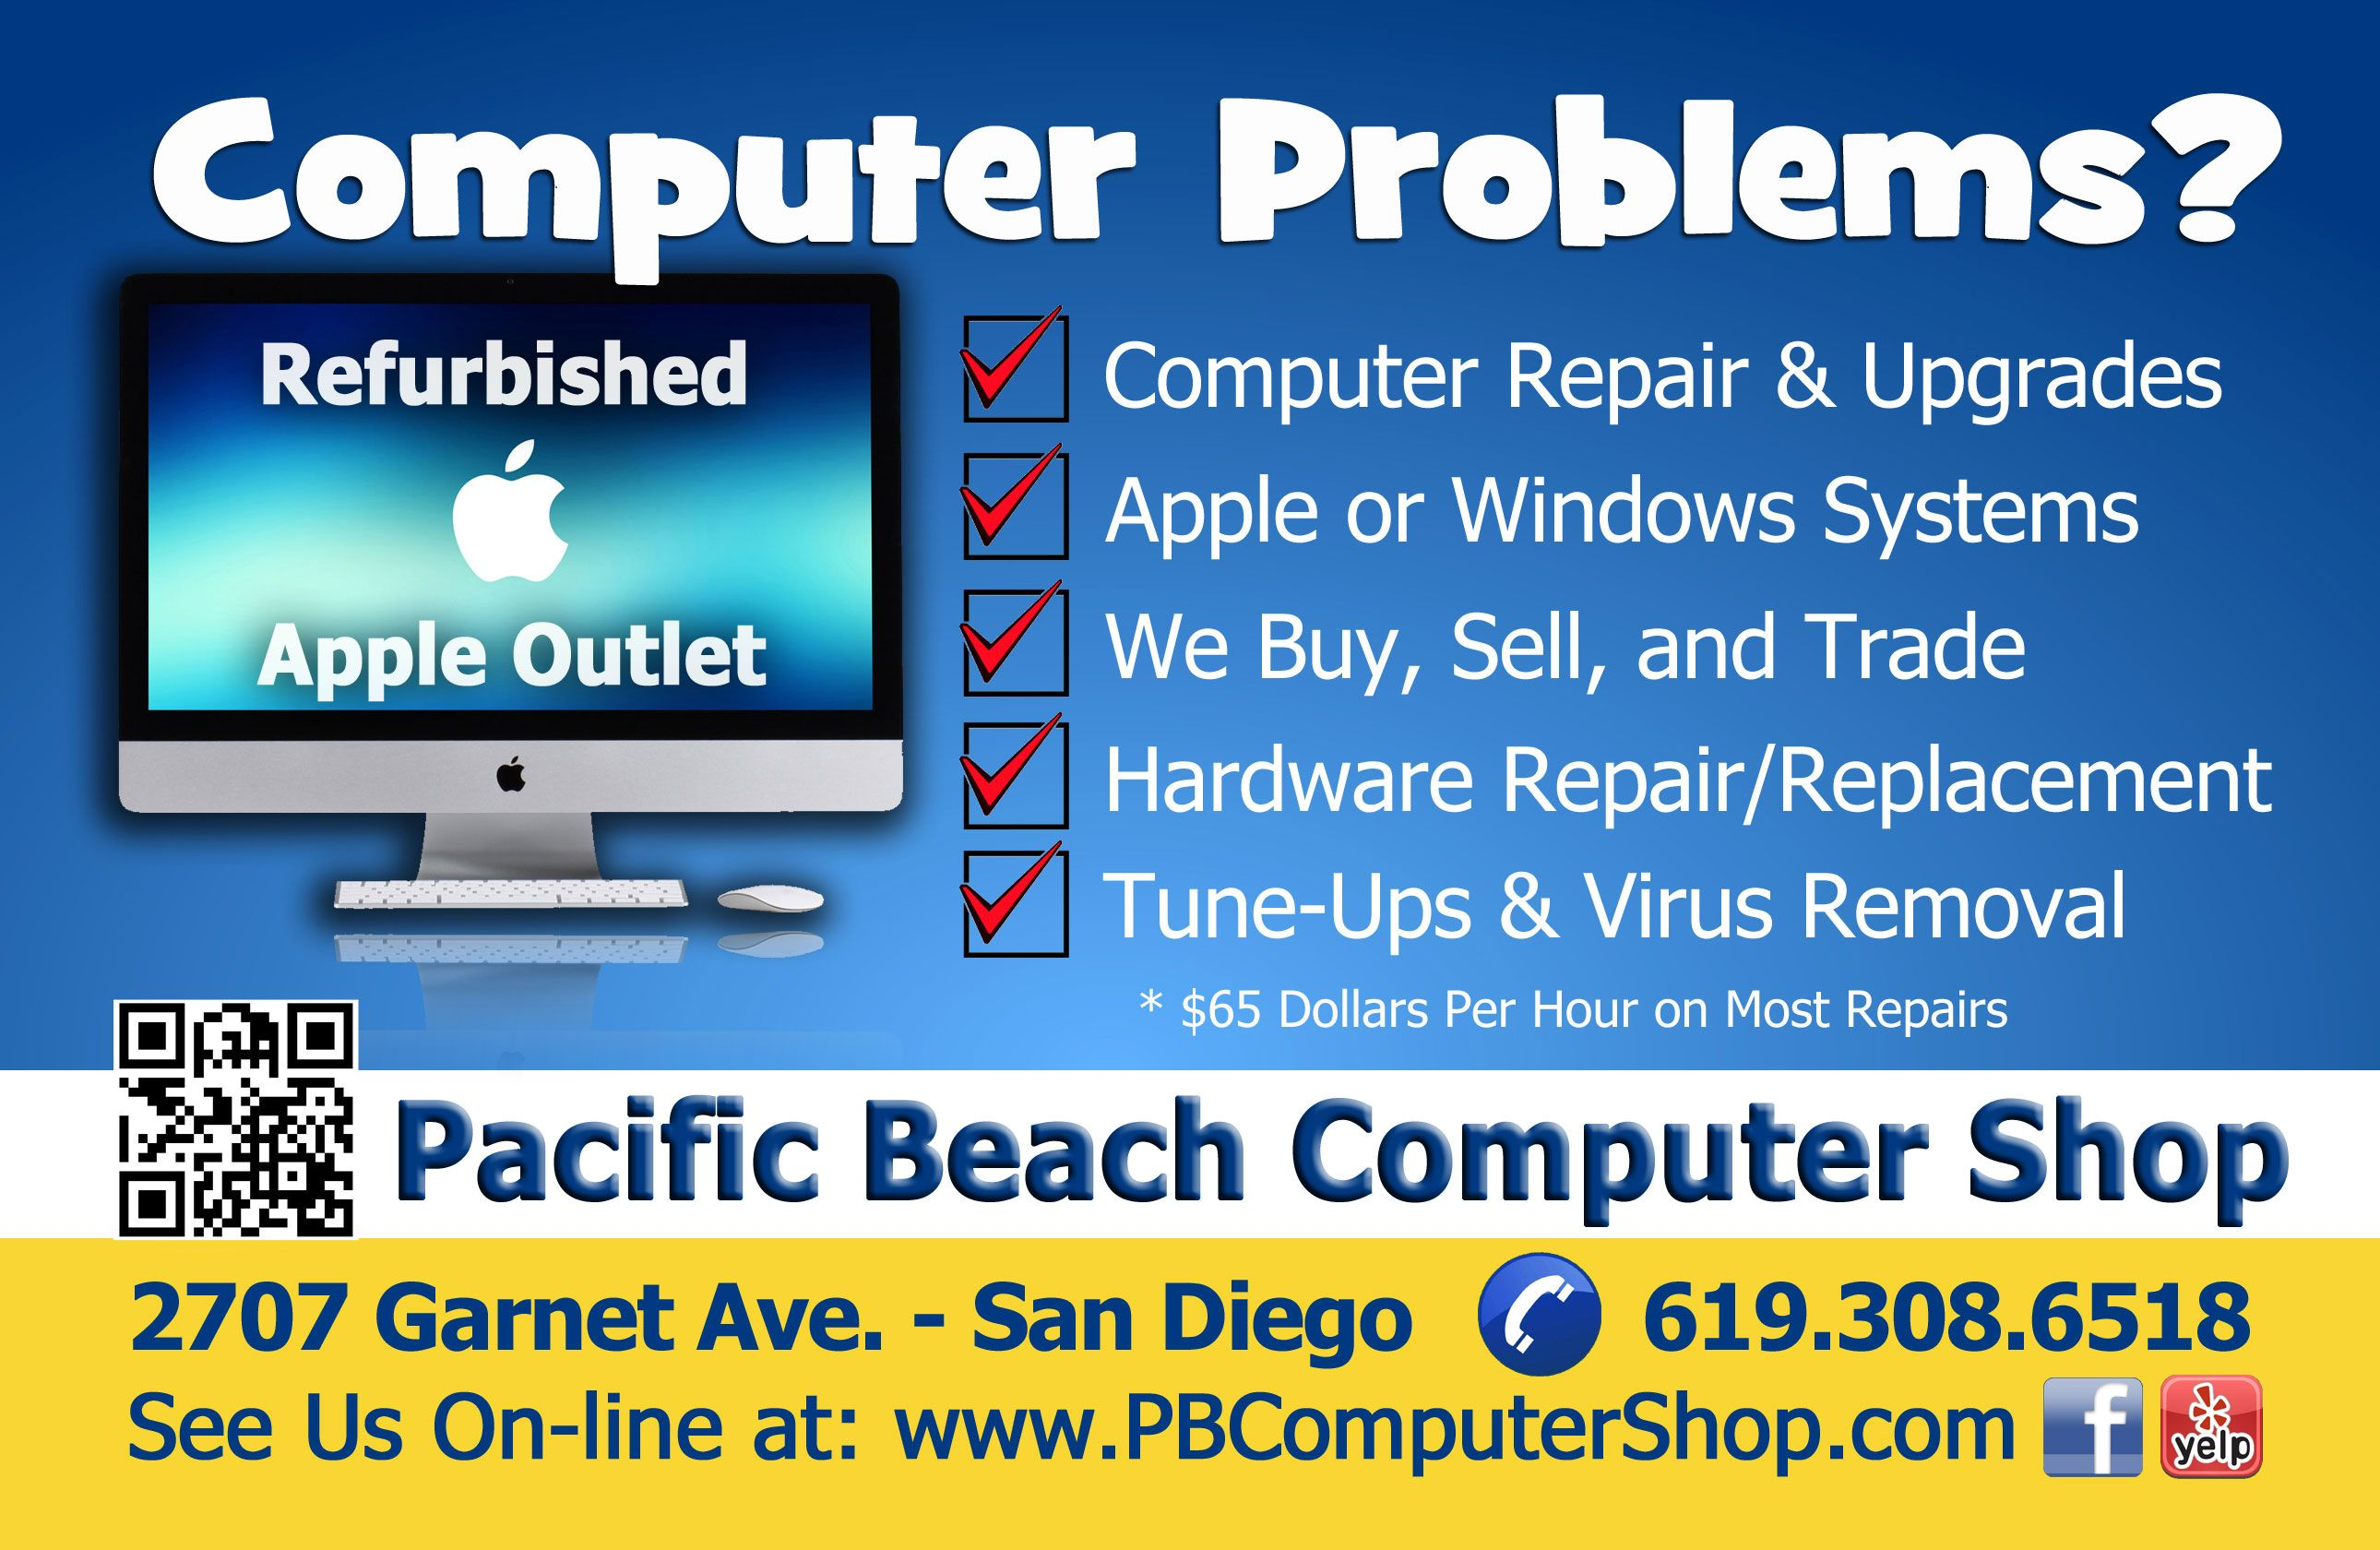 Pb Computer Shop Flyer  Computer Repair San Diego Ca Apple